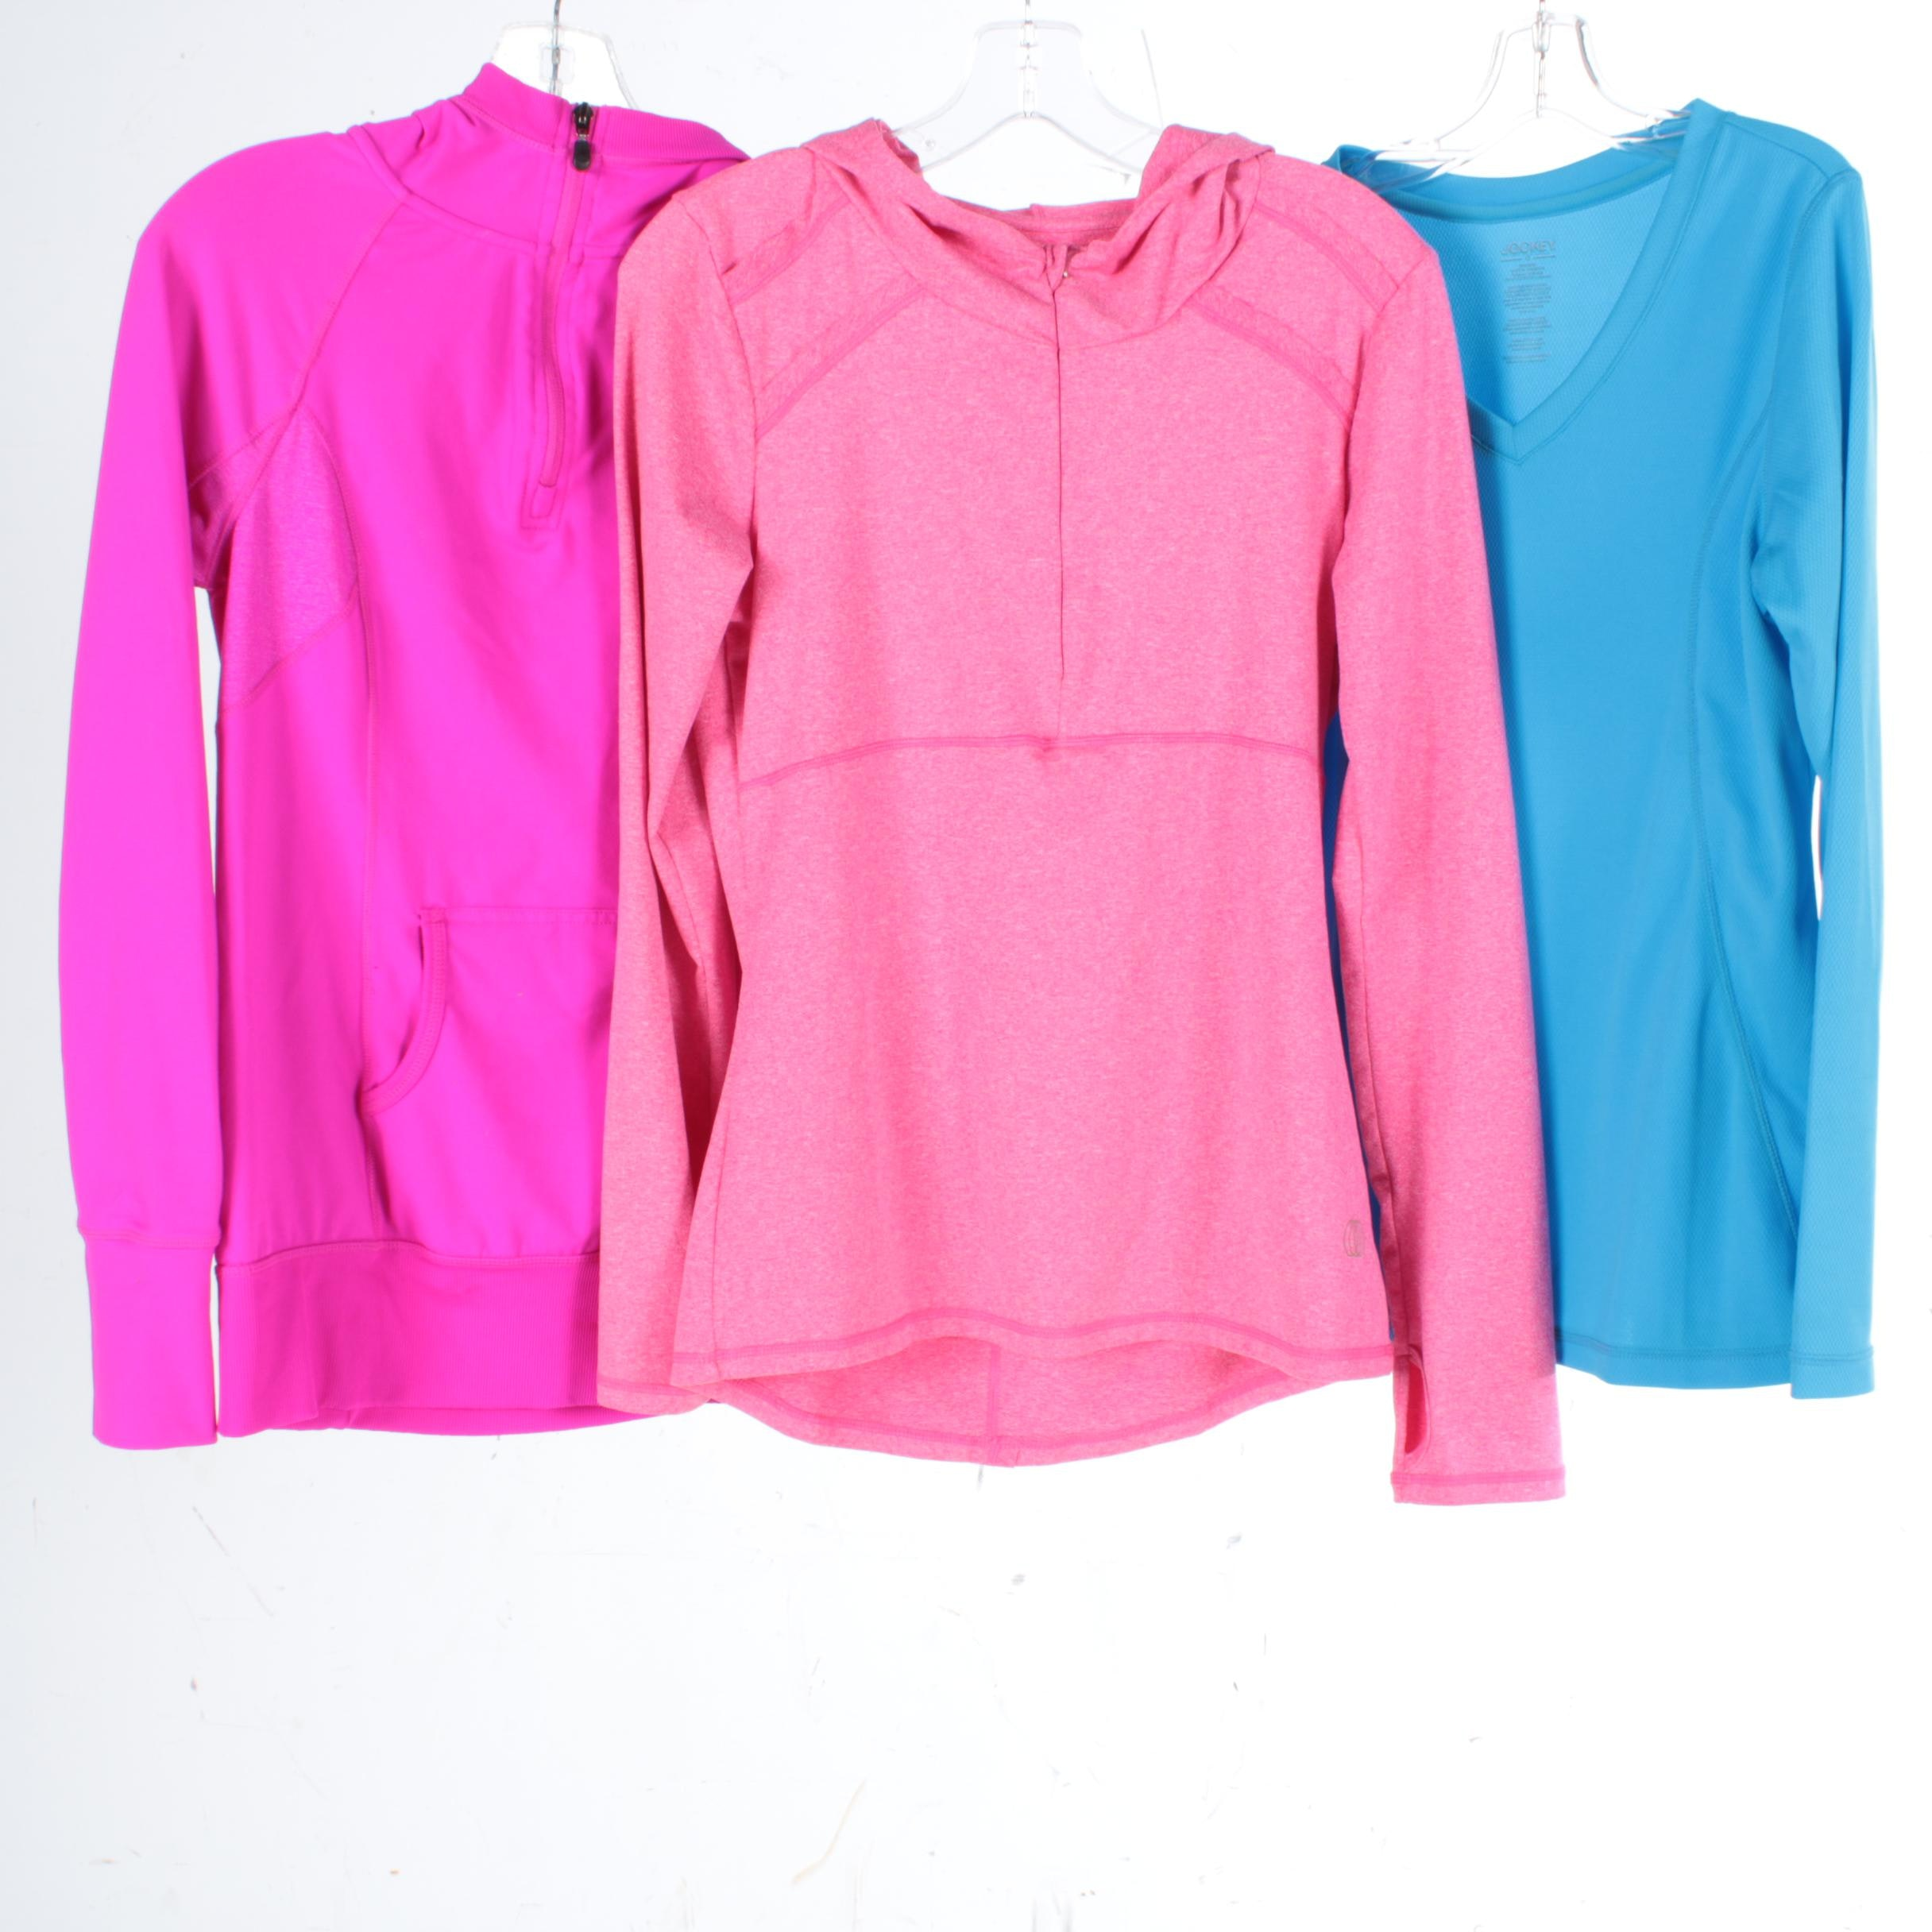 Women's Activewear Pullovers Including Jockey and Kyodan